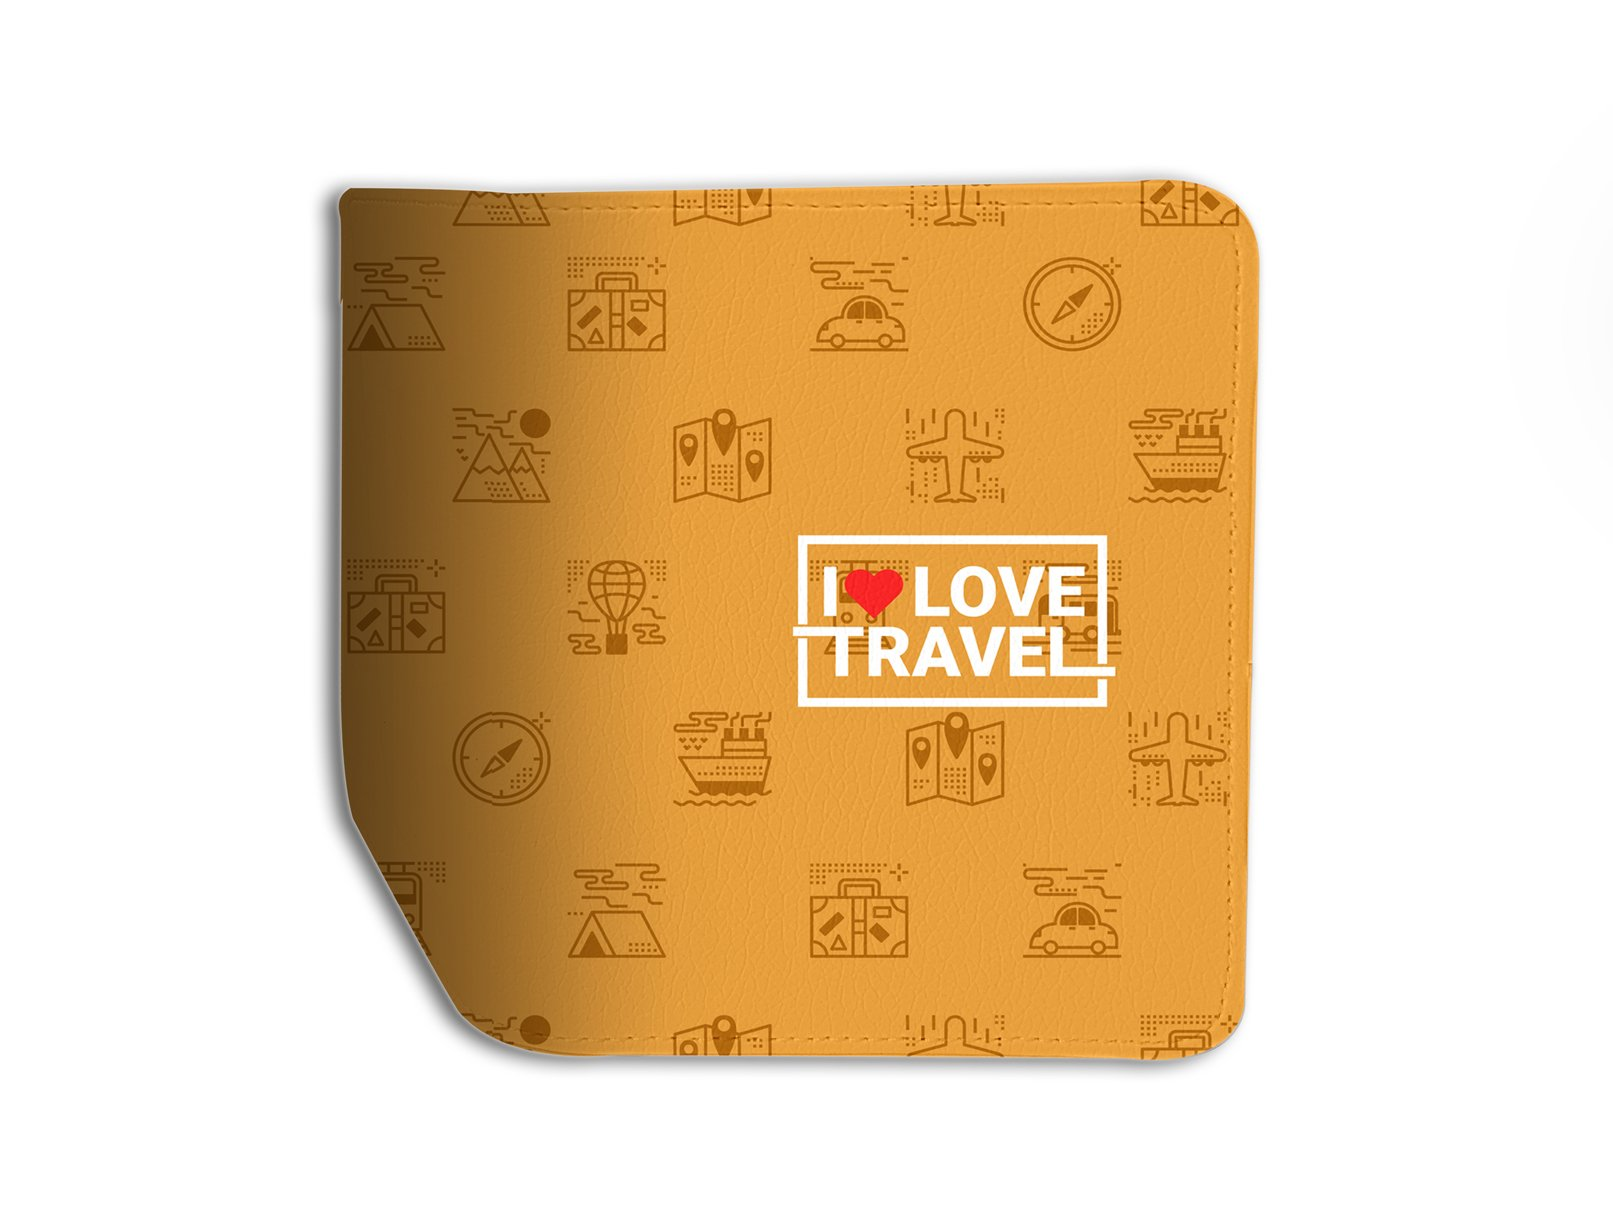 I Love Travel Leather Business ID Passport Holder Protector Cover_SUPERTRAMPshop